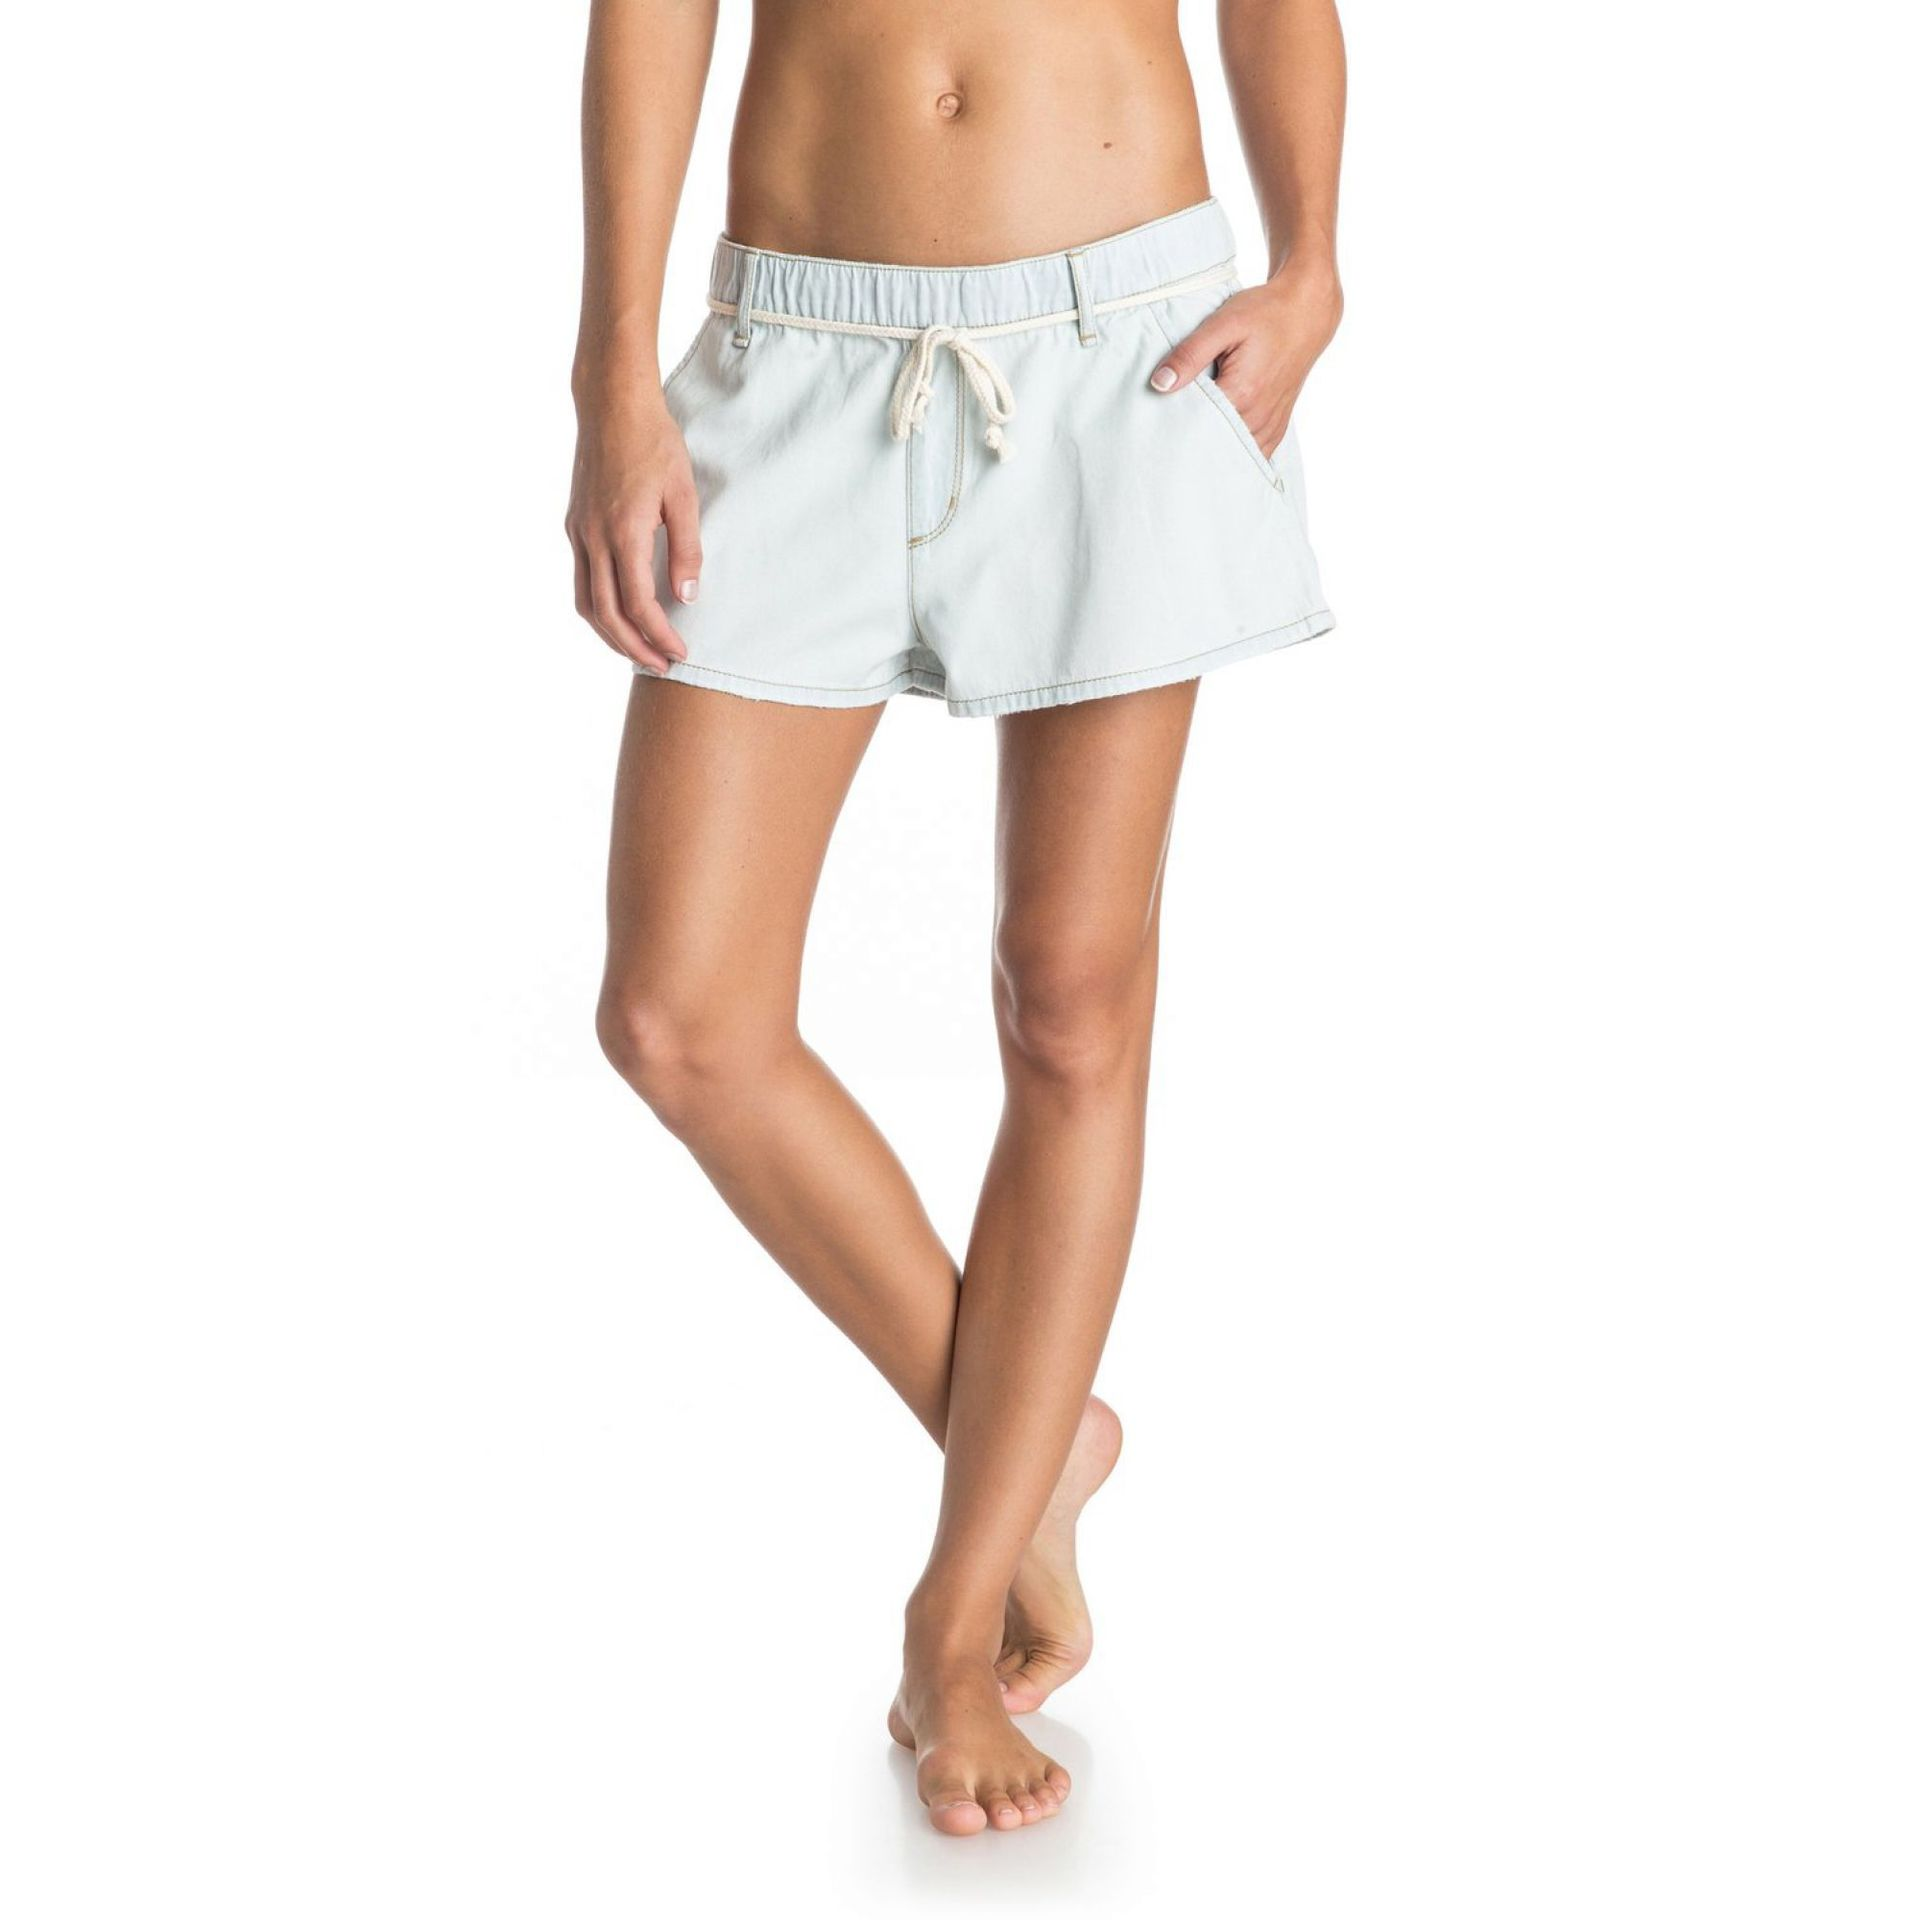 SPODNIE ROXY BEACHY BEACH DENIM SHORTS 0